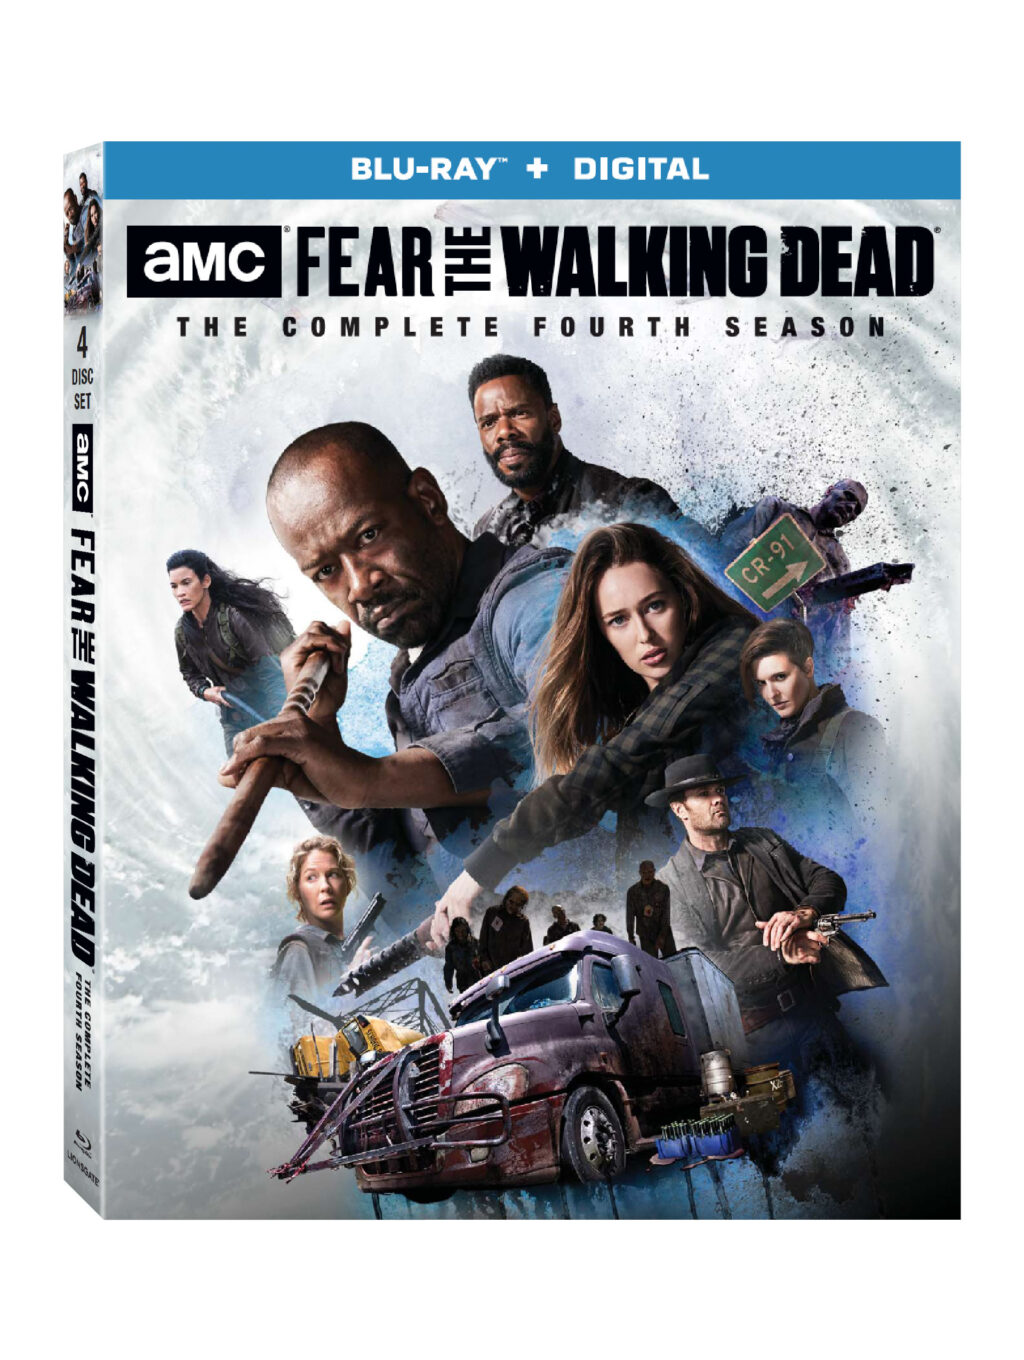 fearthewalkingdeadseason4 1024x1360 - FEAR THE WALKING DEAD Season 4 Gets March Home Video Release Date